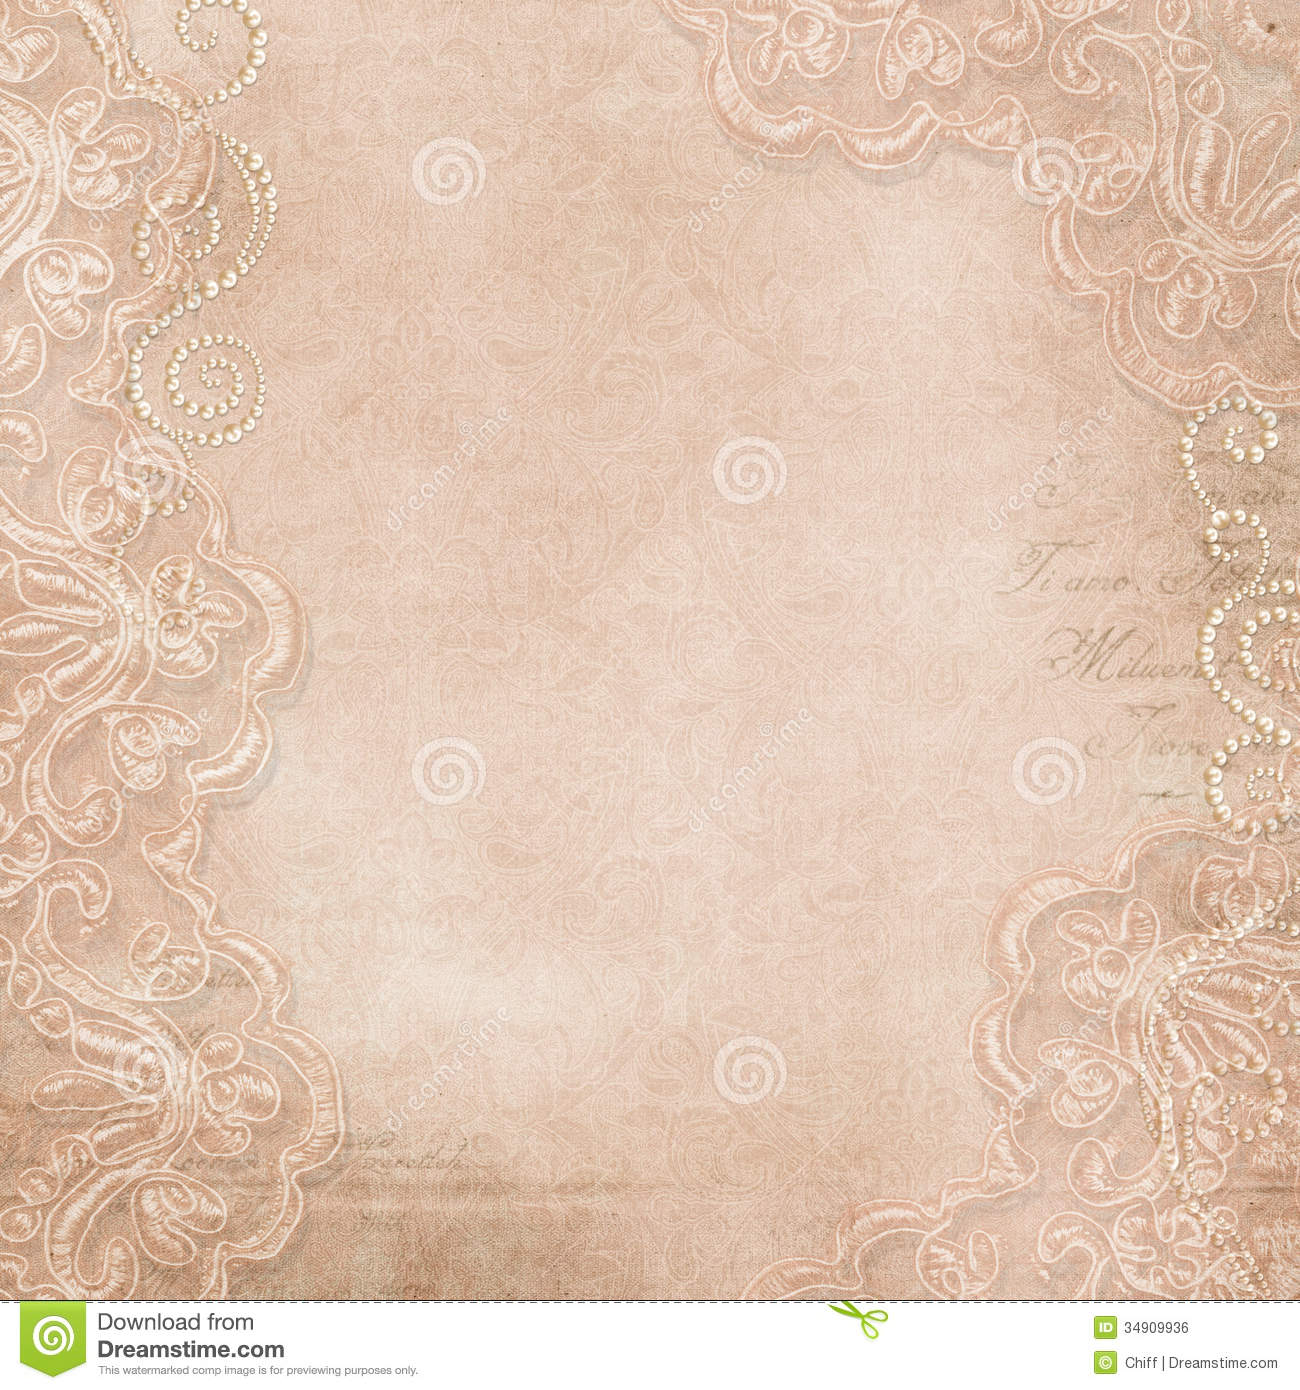 lace pearls pink wallpaper - photo #37